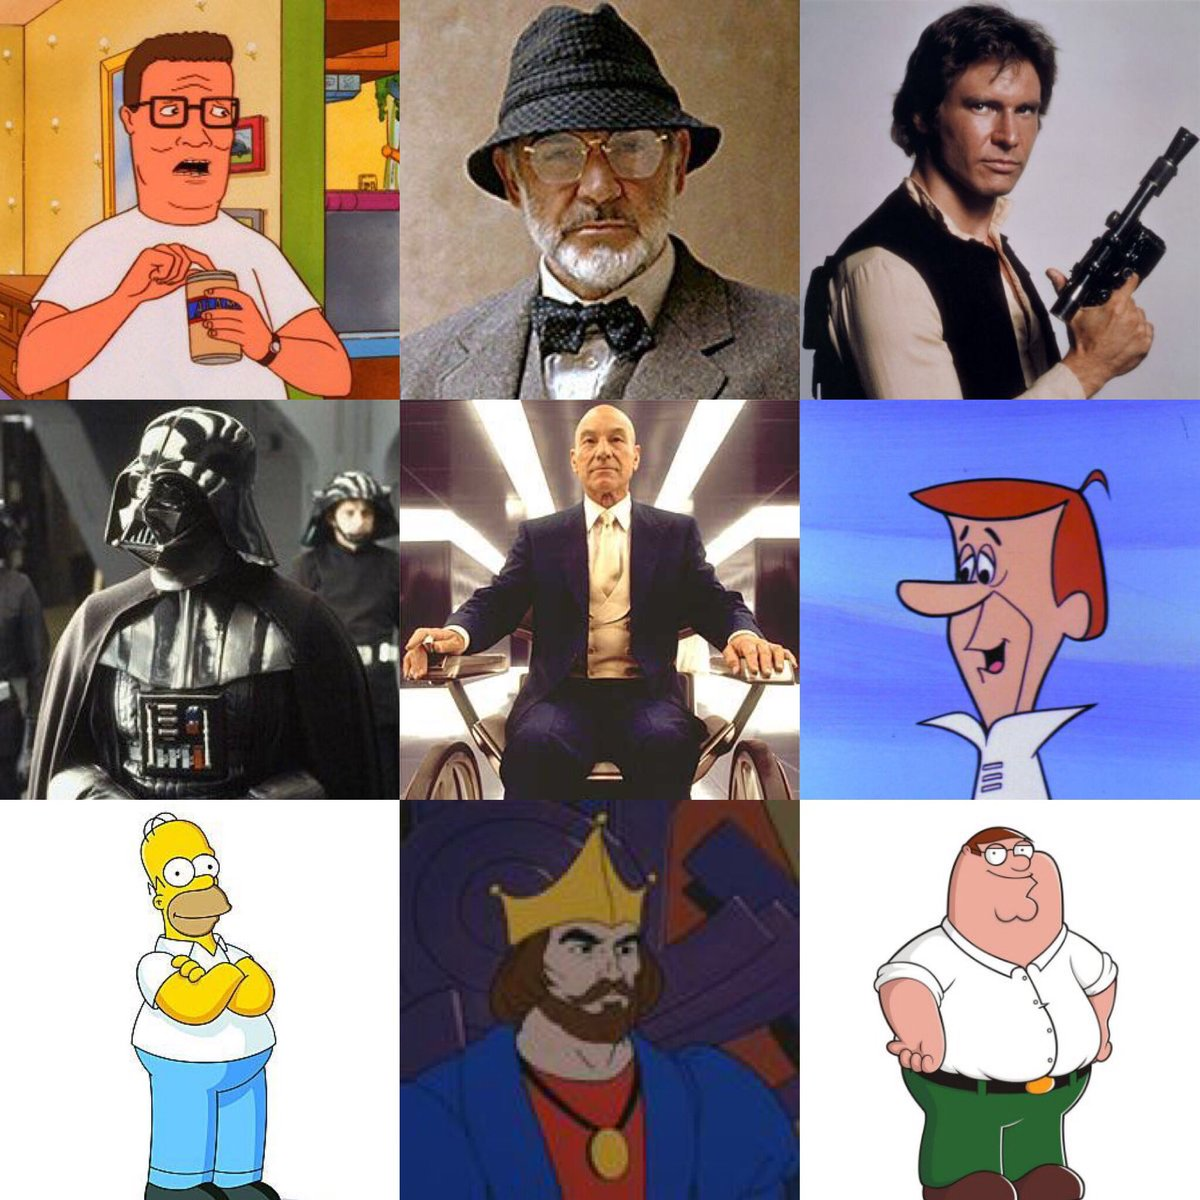 #happyfathersday From some of my favorite  #cartoons #movie #fathers